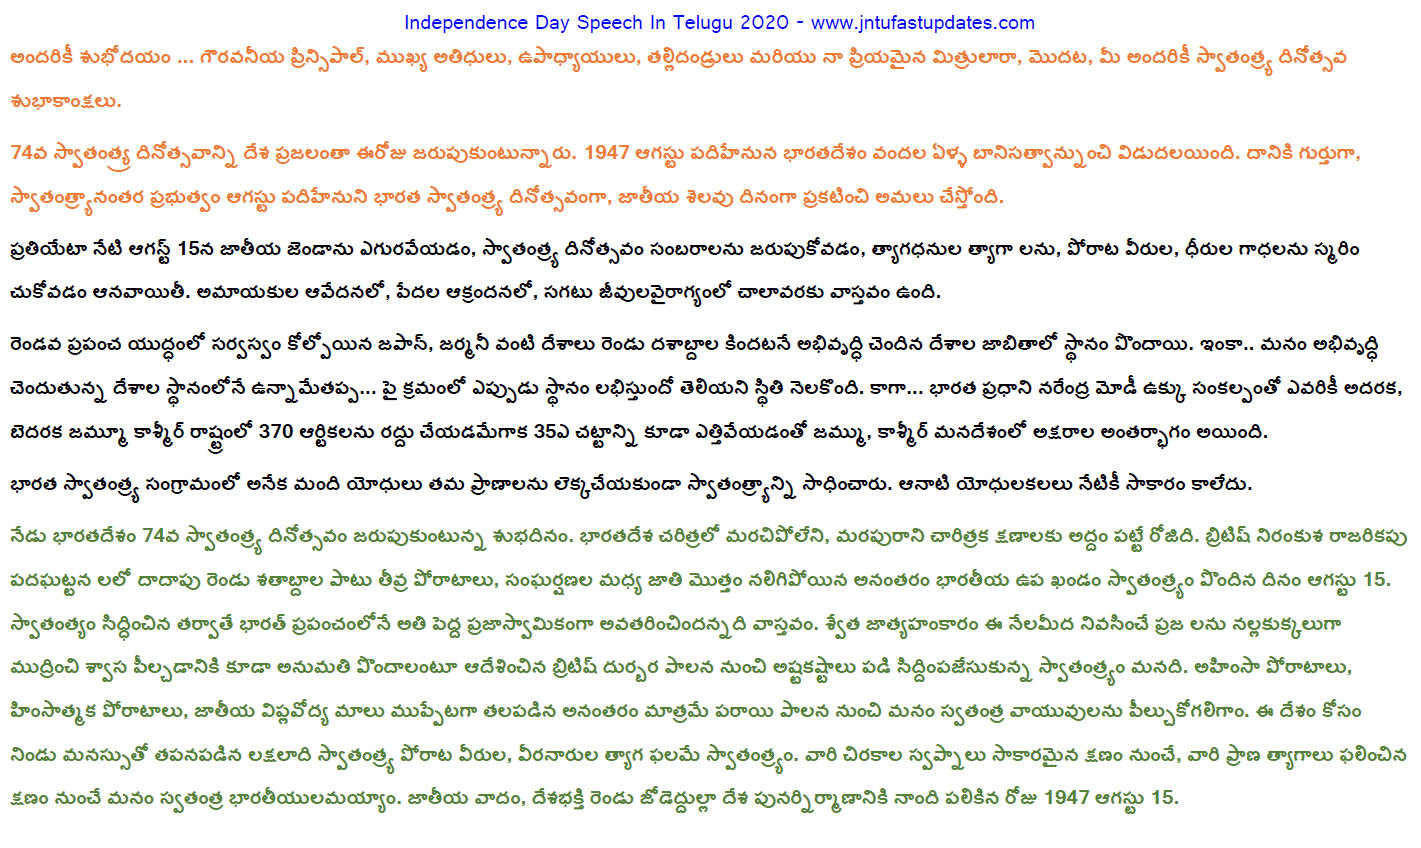 Independence Day Speech In Telugu 2019